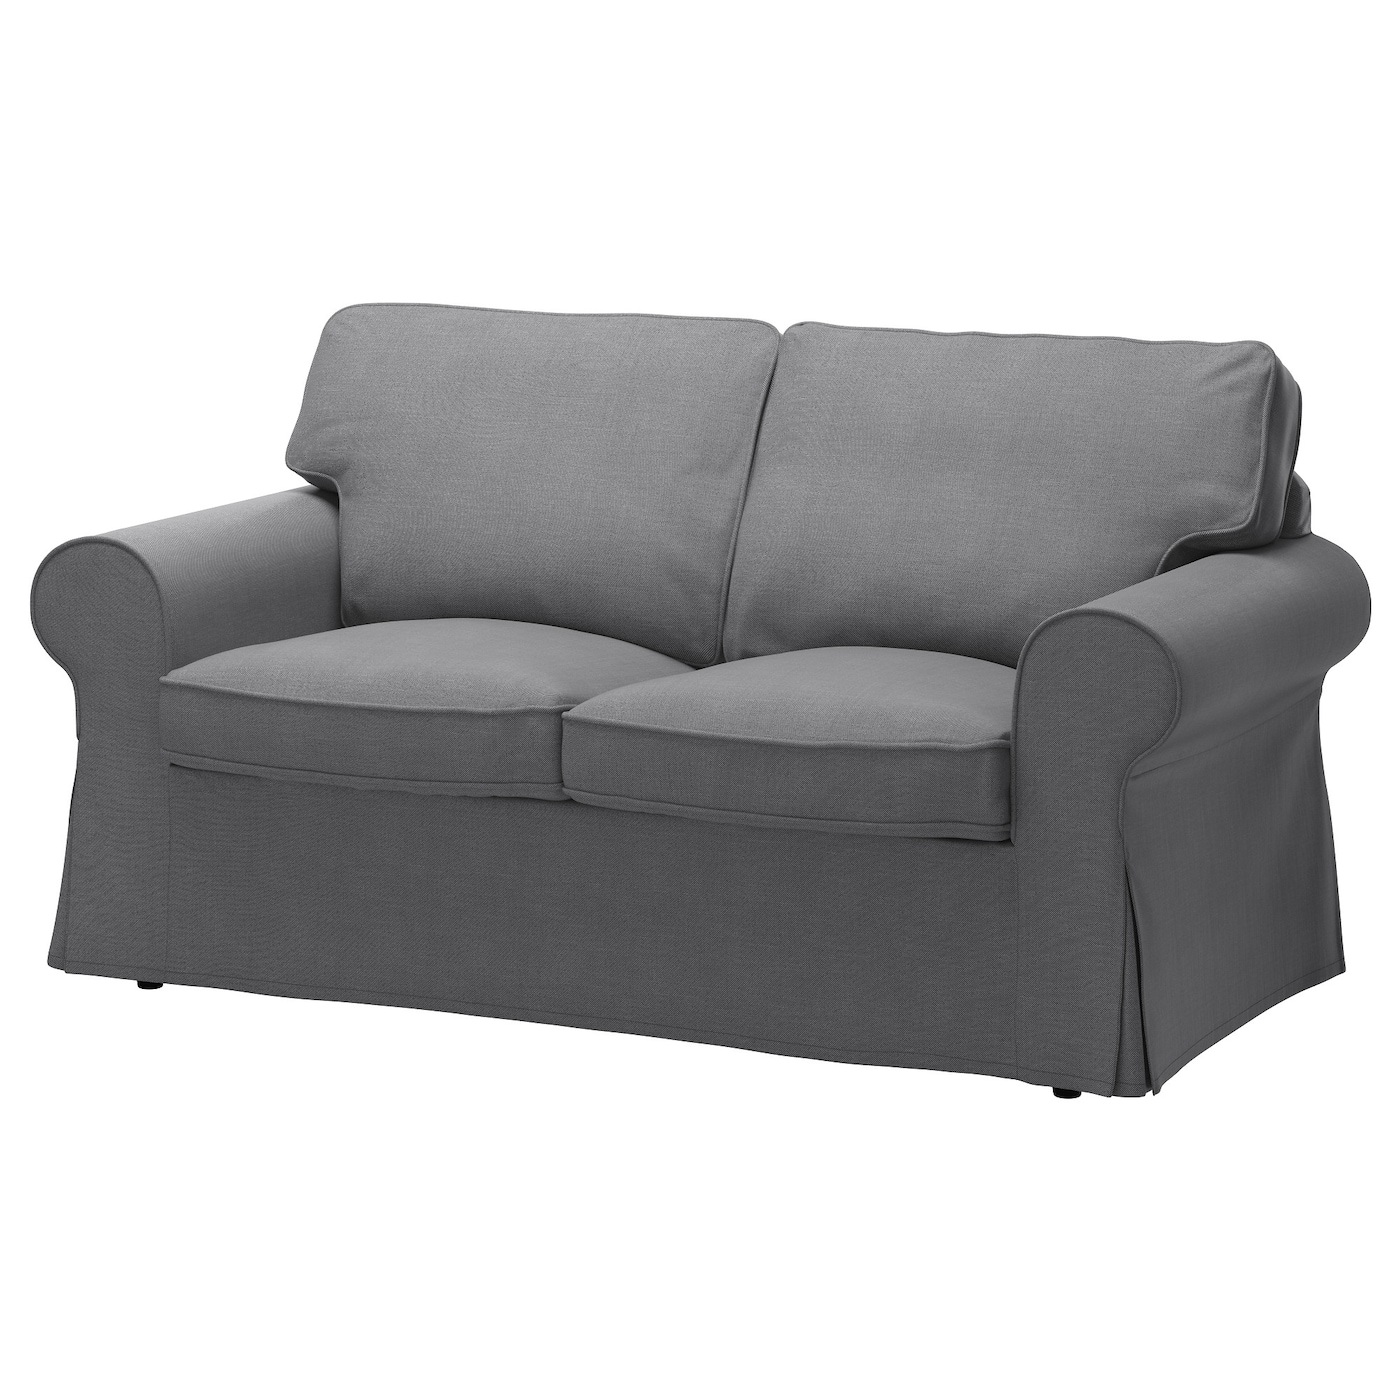 Ikea Ektorp 2 Seater Sofa Bed